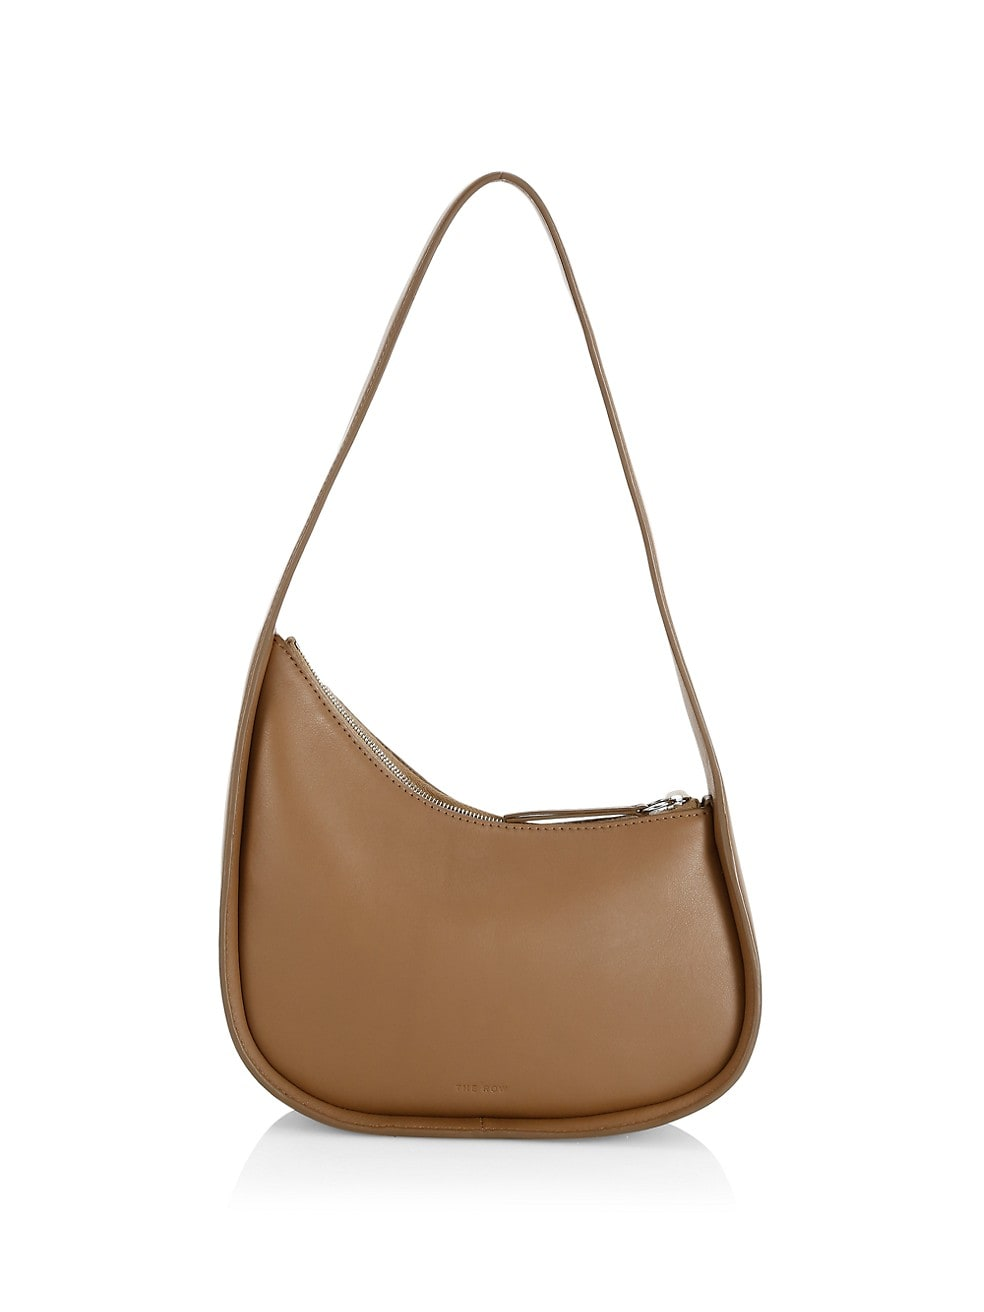 Half Moon Leather Shoulder Bag by The Row, available on saksfifthavenue.com for $1290 Hailey Baldwin Bags Exact Product